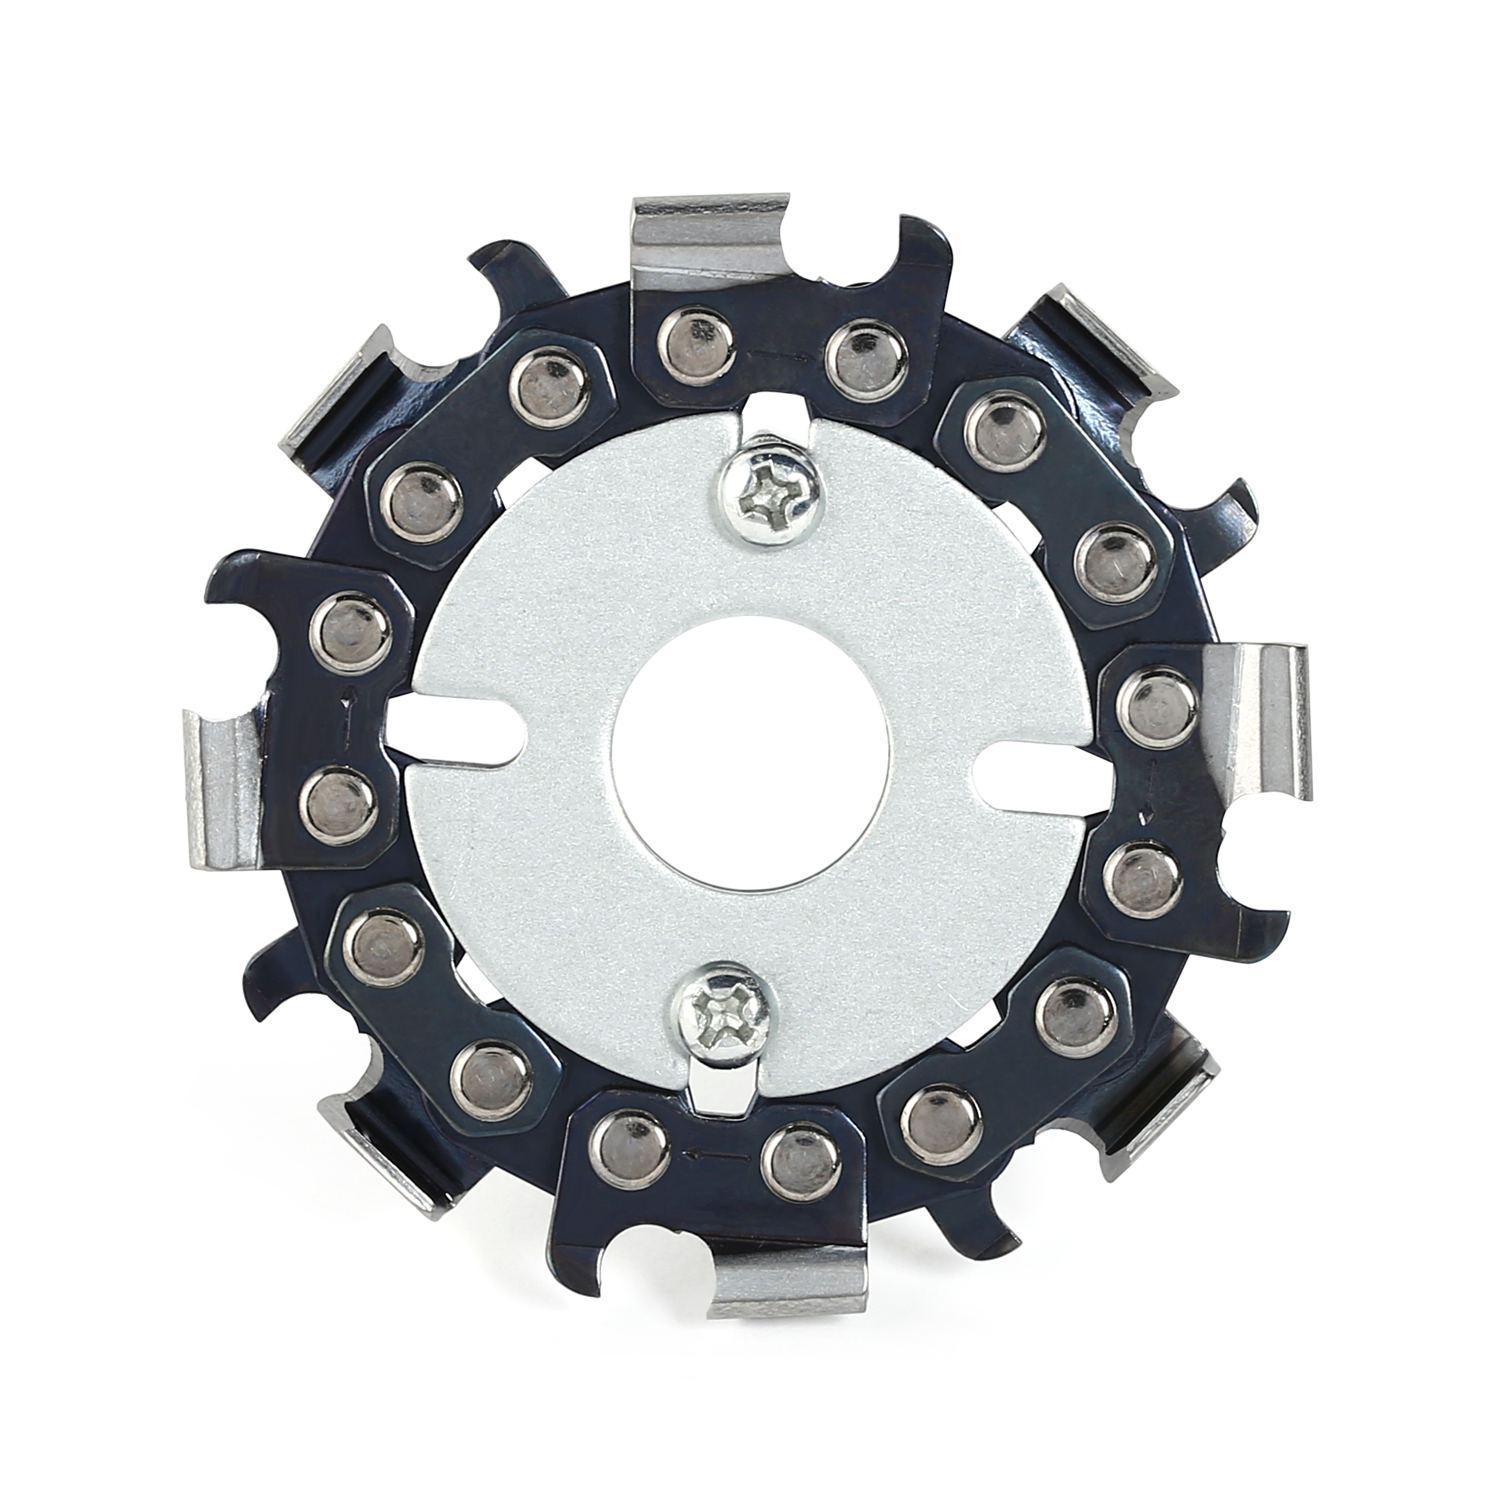 2.5 Inch Woodworking Saw 16mm Angle Grinder Chain Wood Carving Disk Grinder Disc Blade Cutting Blade Slotted  8 Teeth Saw Blade